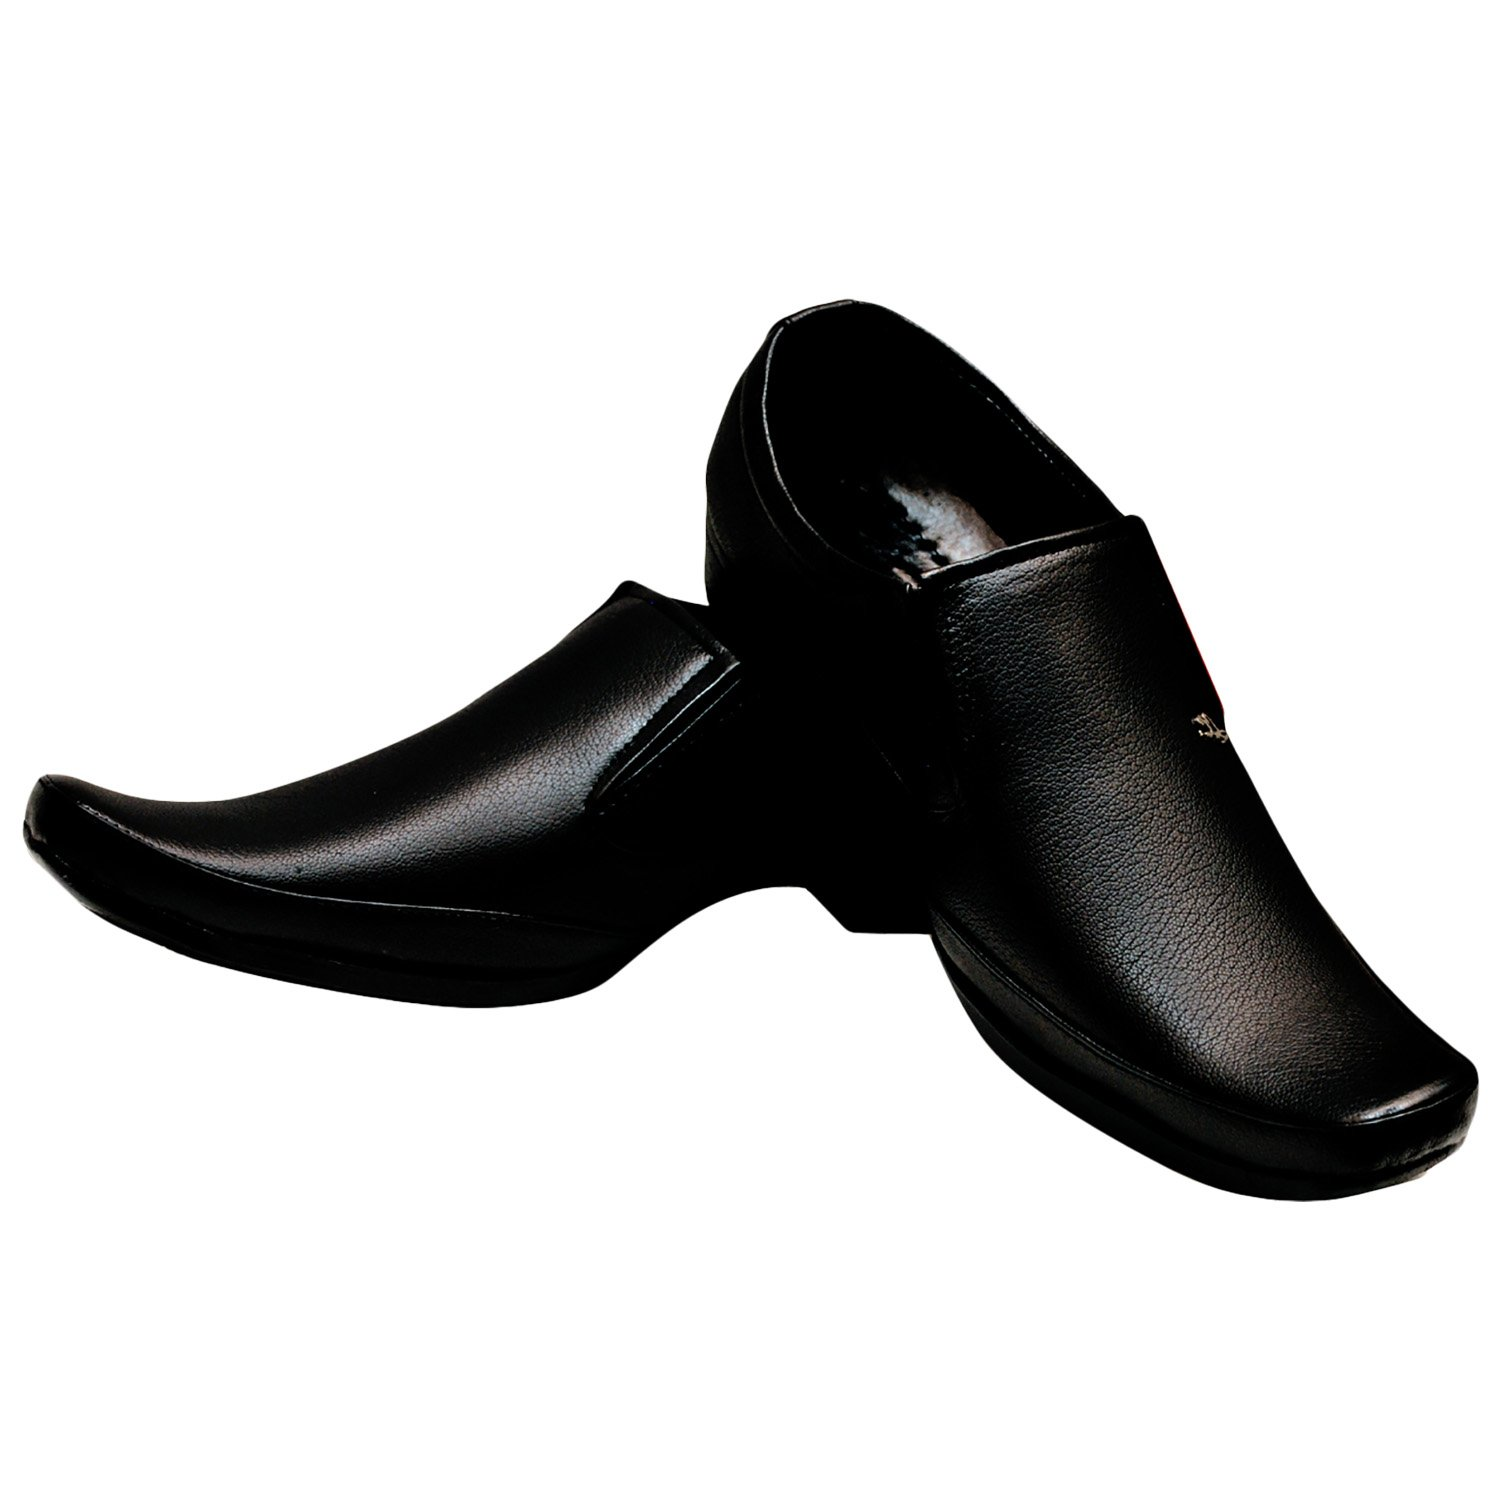 Deals on Kraasa Black Shoes for Men